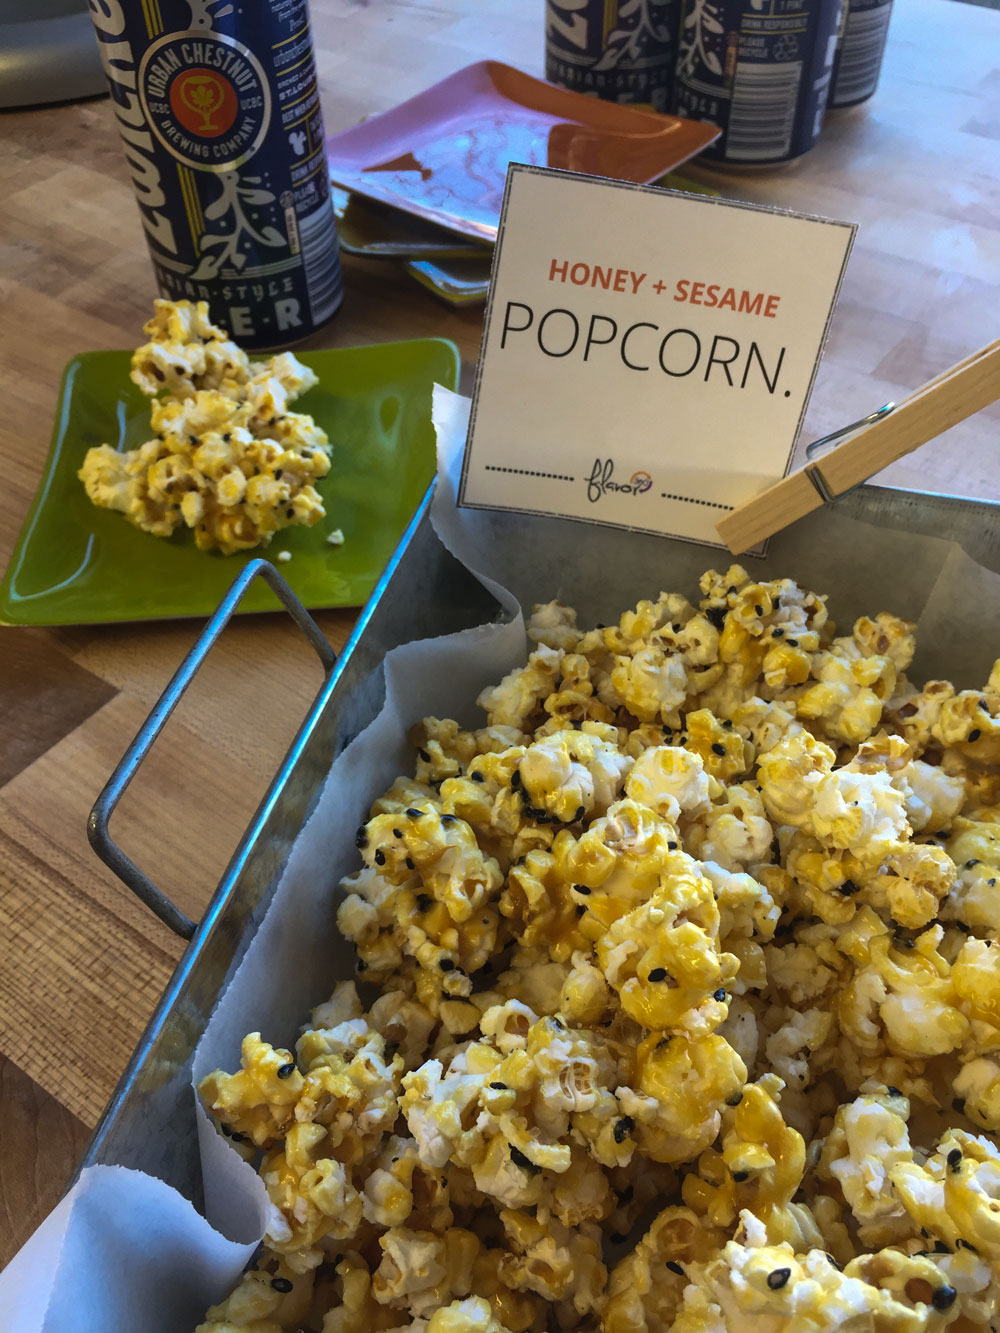 Honey + Sesame Popcorn